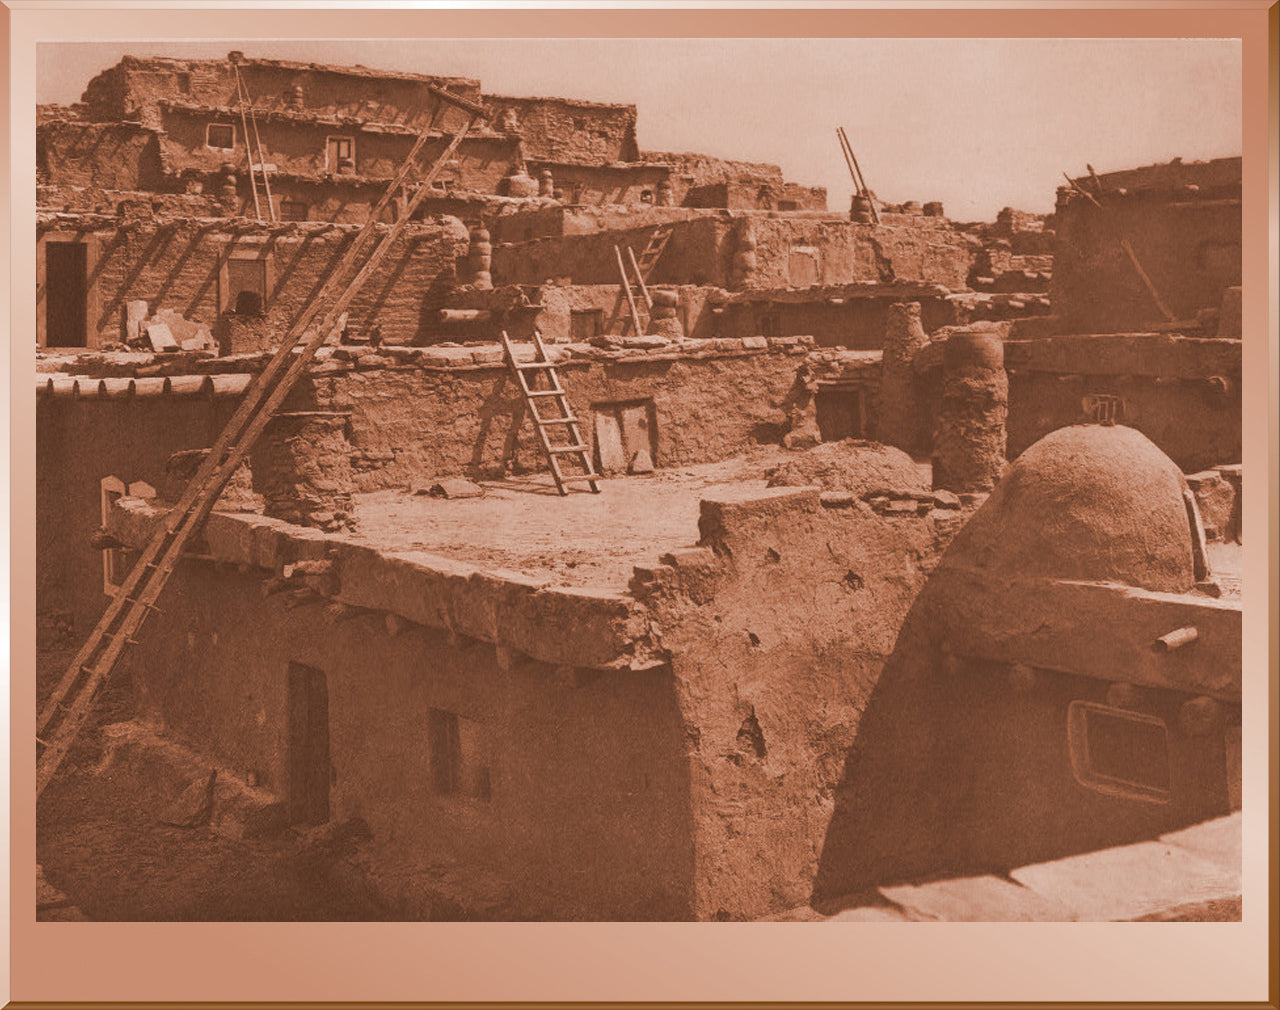 The Terraced Houses of Zuni